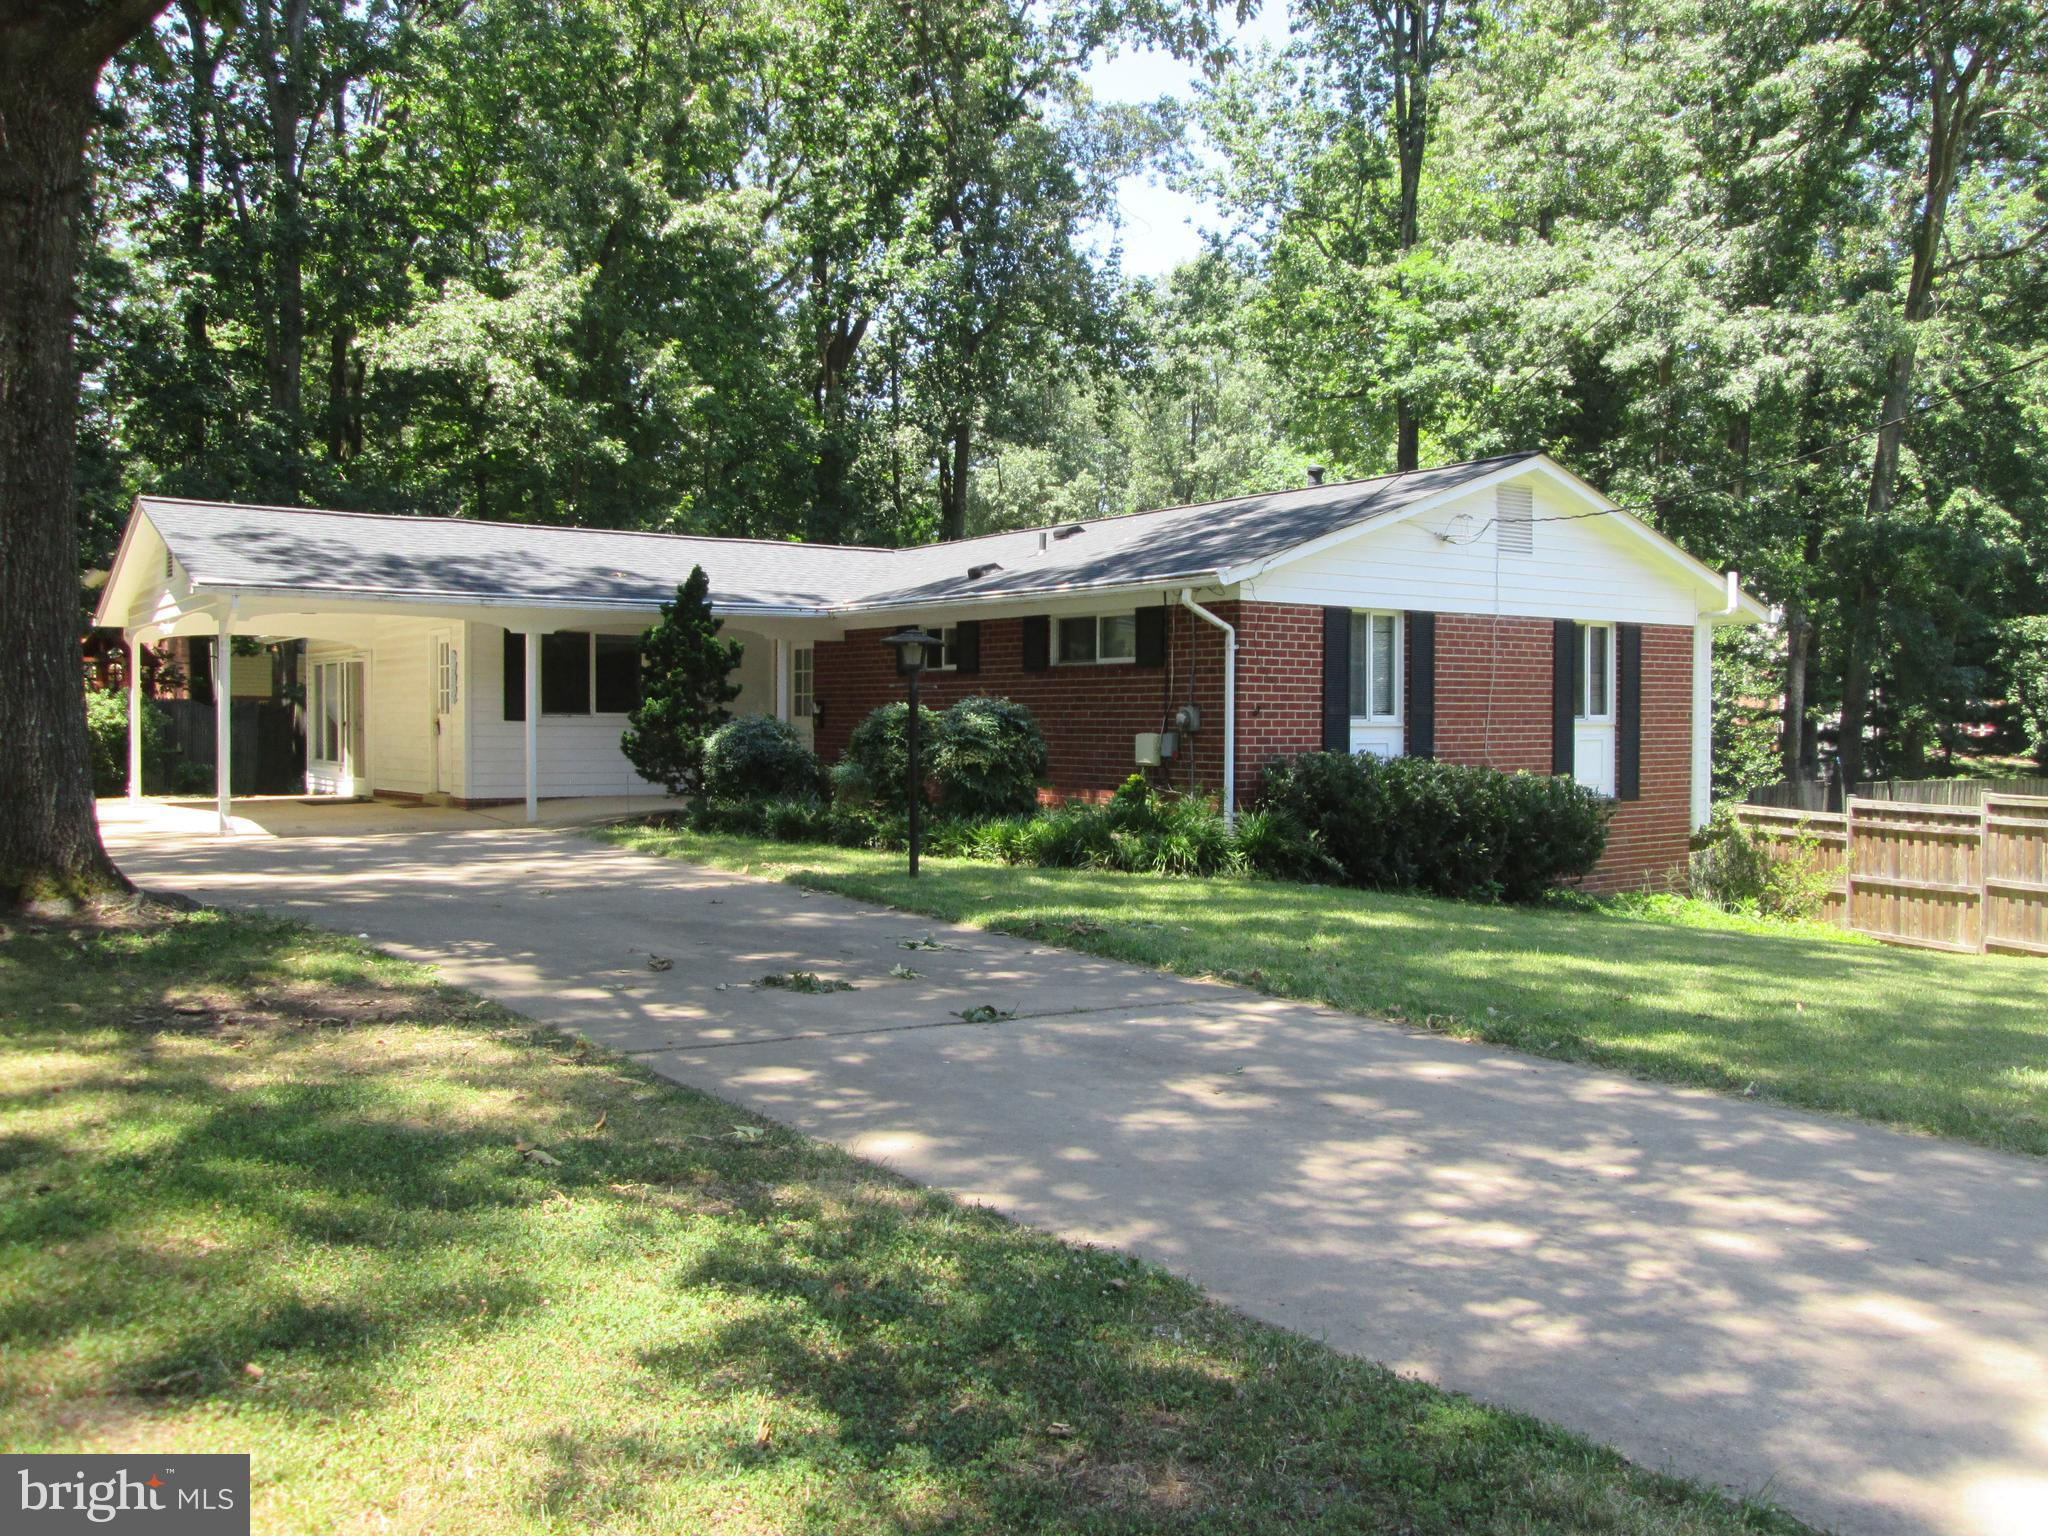 Beautiful rambler with eat-in kitchen, sun room and a fenced back yard. Close to metro, beltway and shopping area. This home is ready for move in and has a fresh coat of paint. New carpet will be installed in the sunroom.